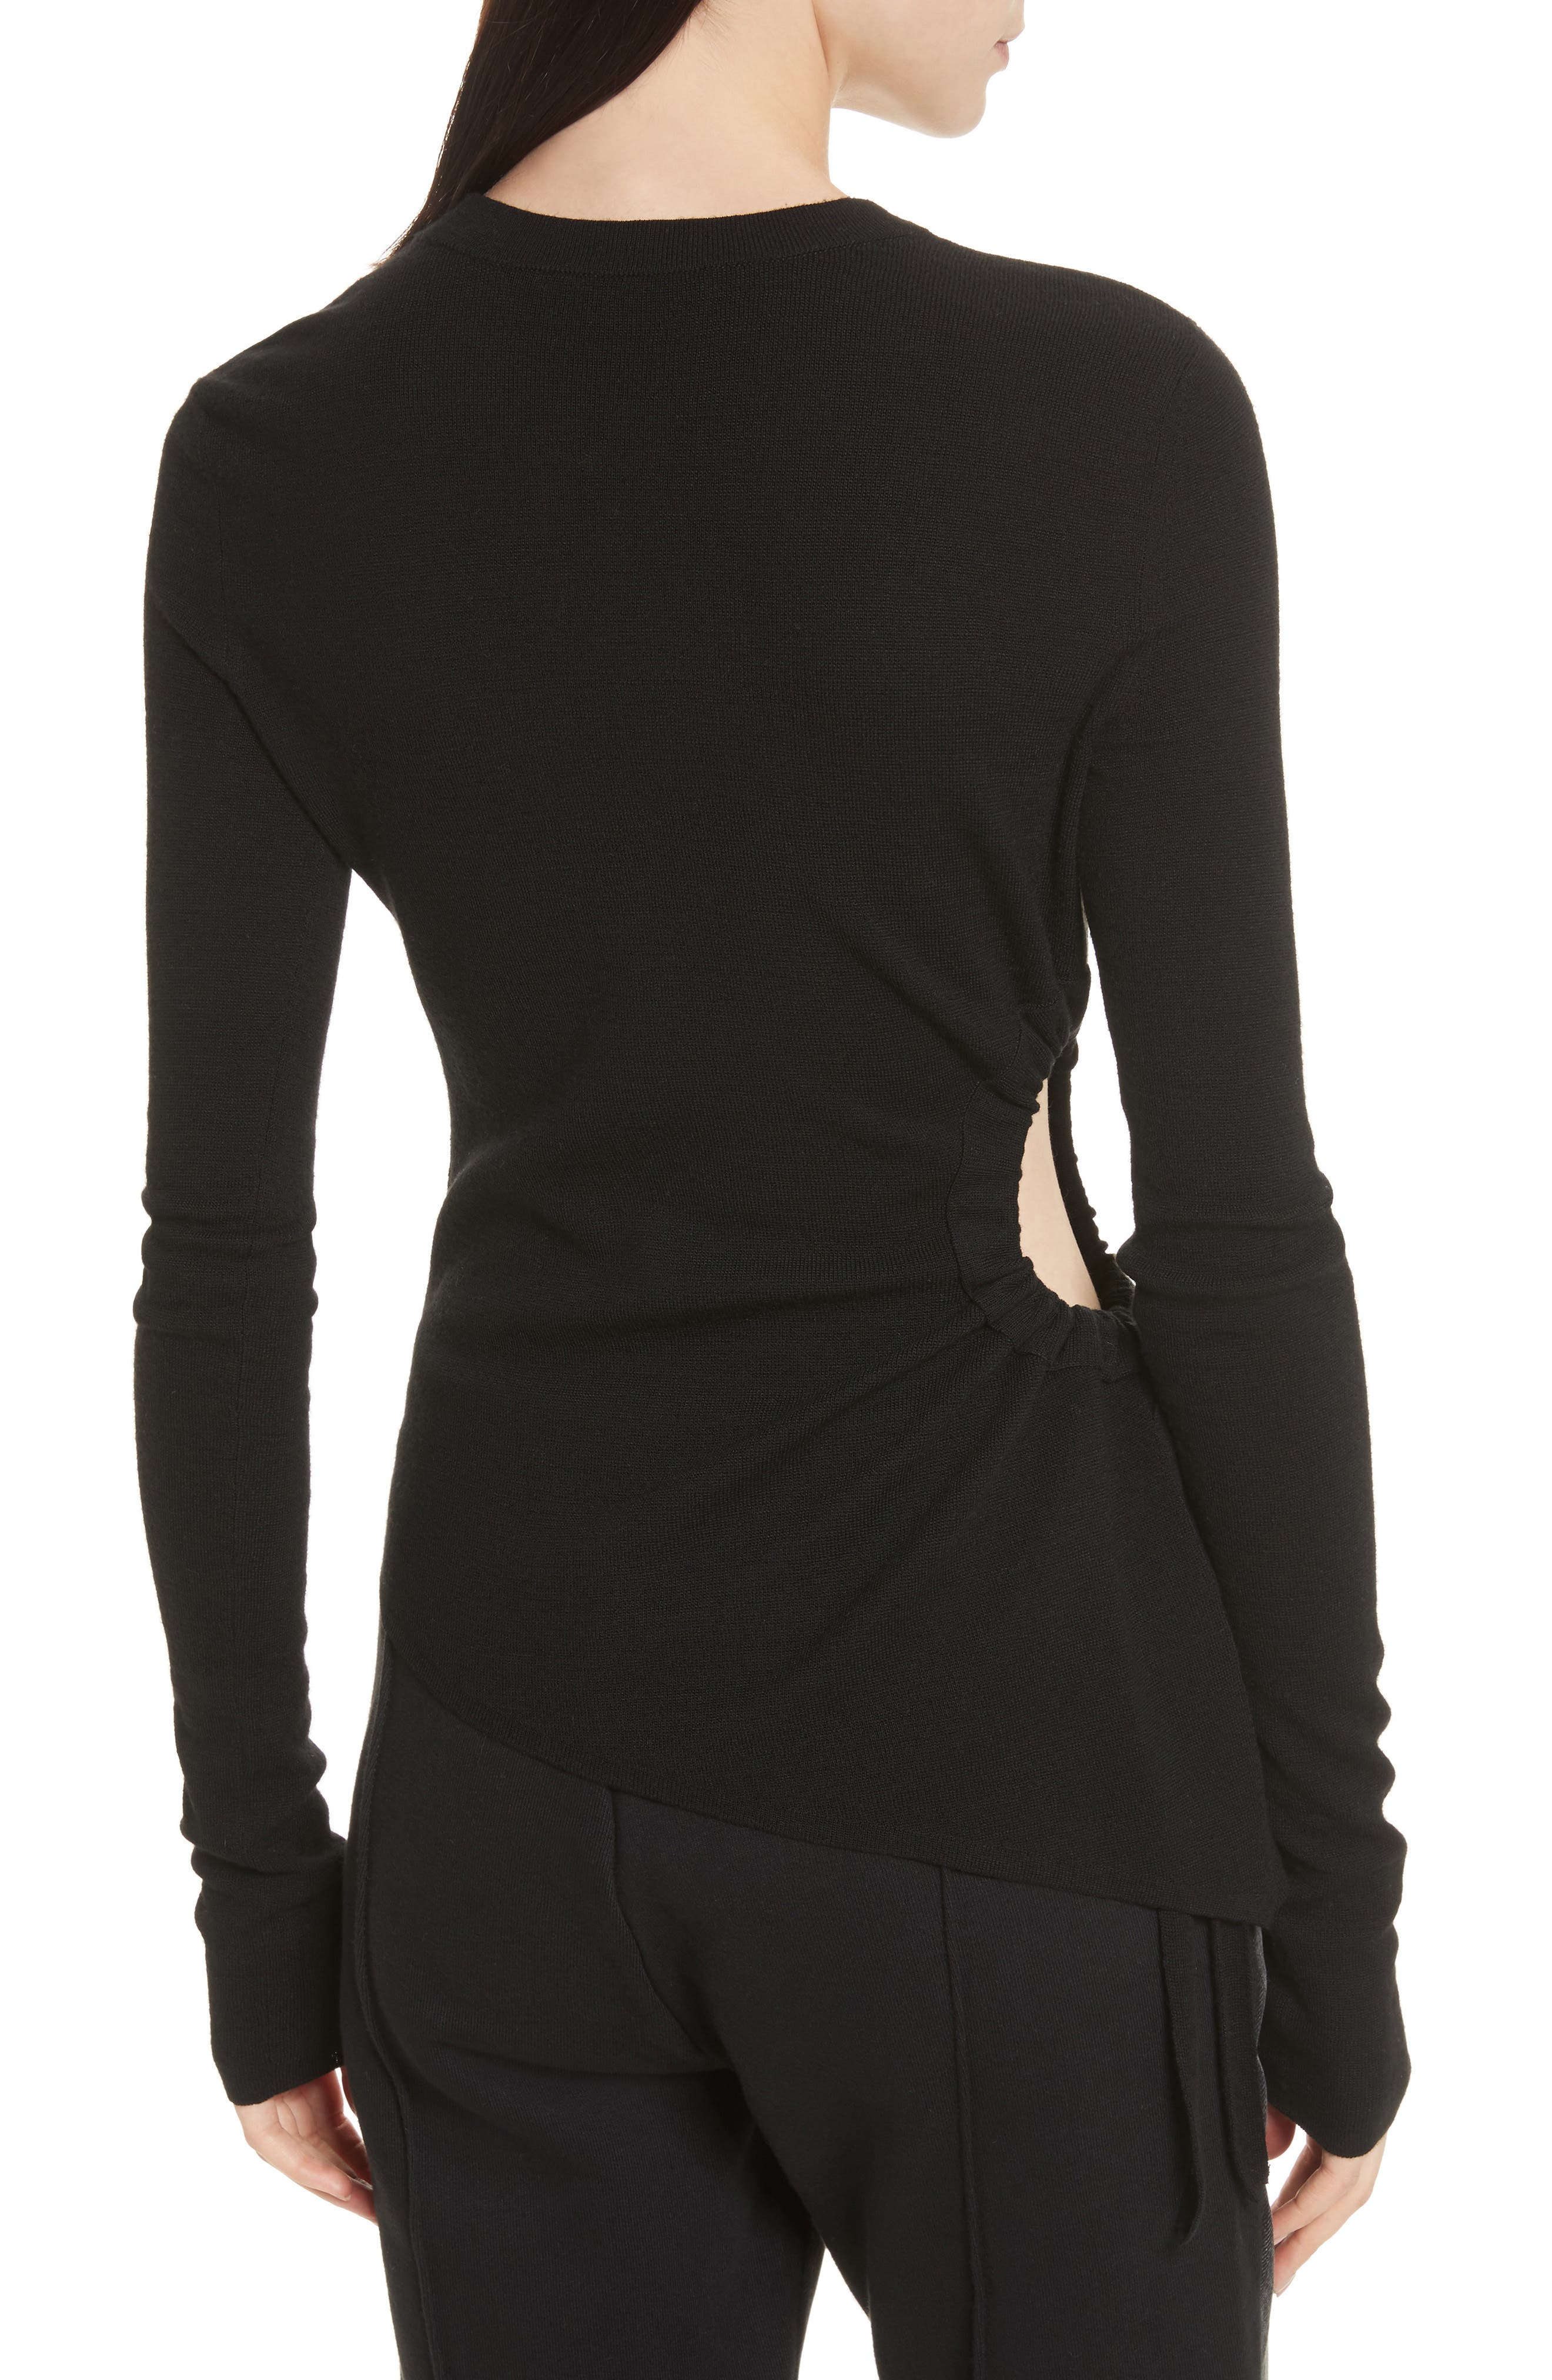 T by Alexander Side Cutout Ruched Merino Wool Sweater,                             Alternate thumbnail 2, color,                             Black